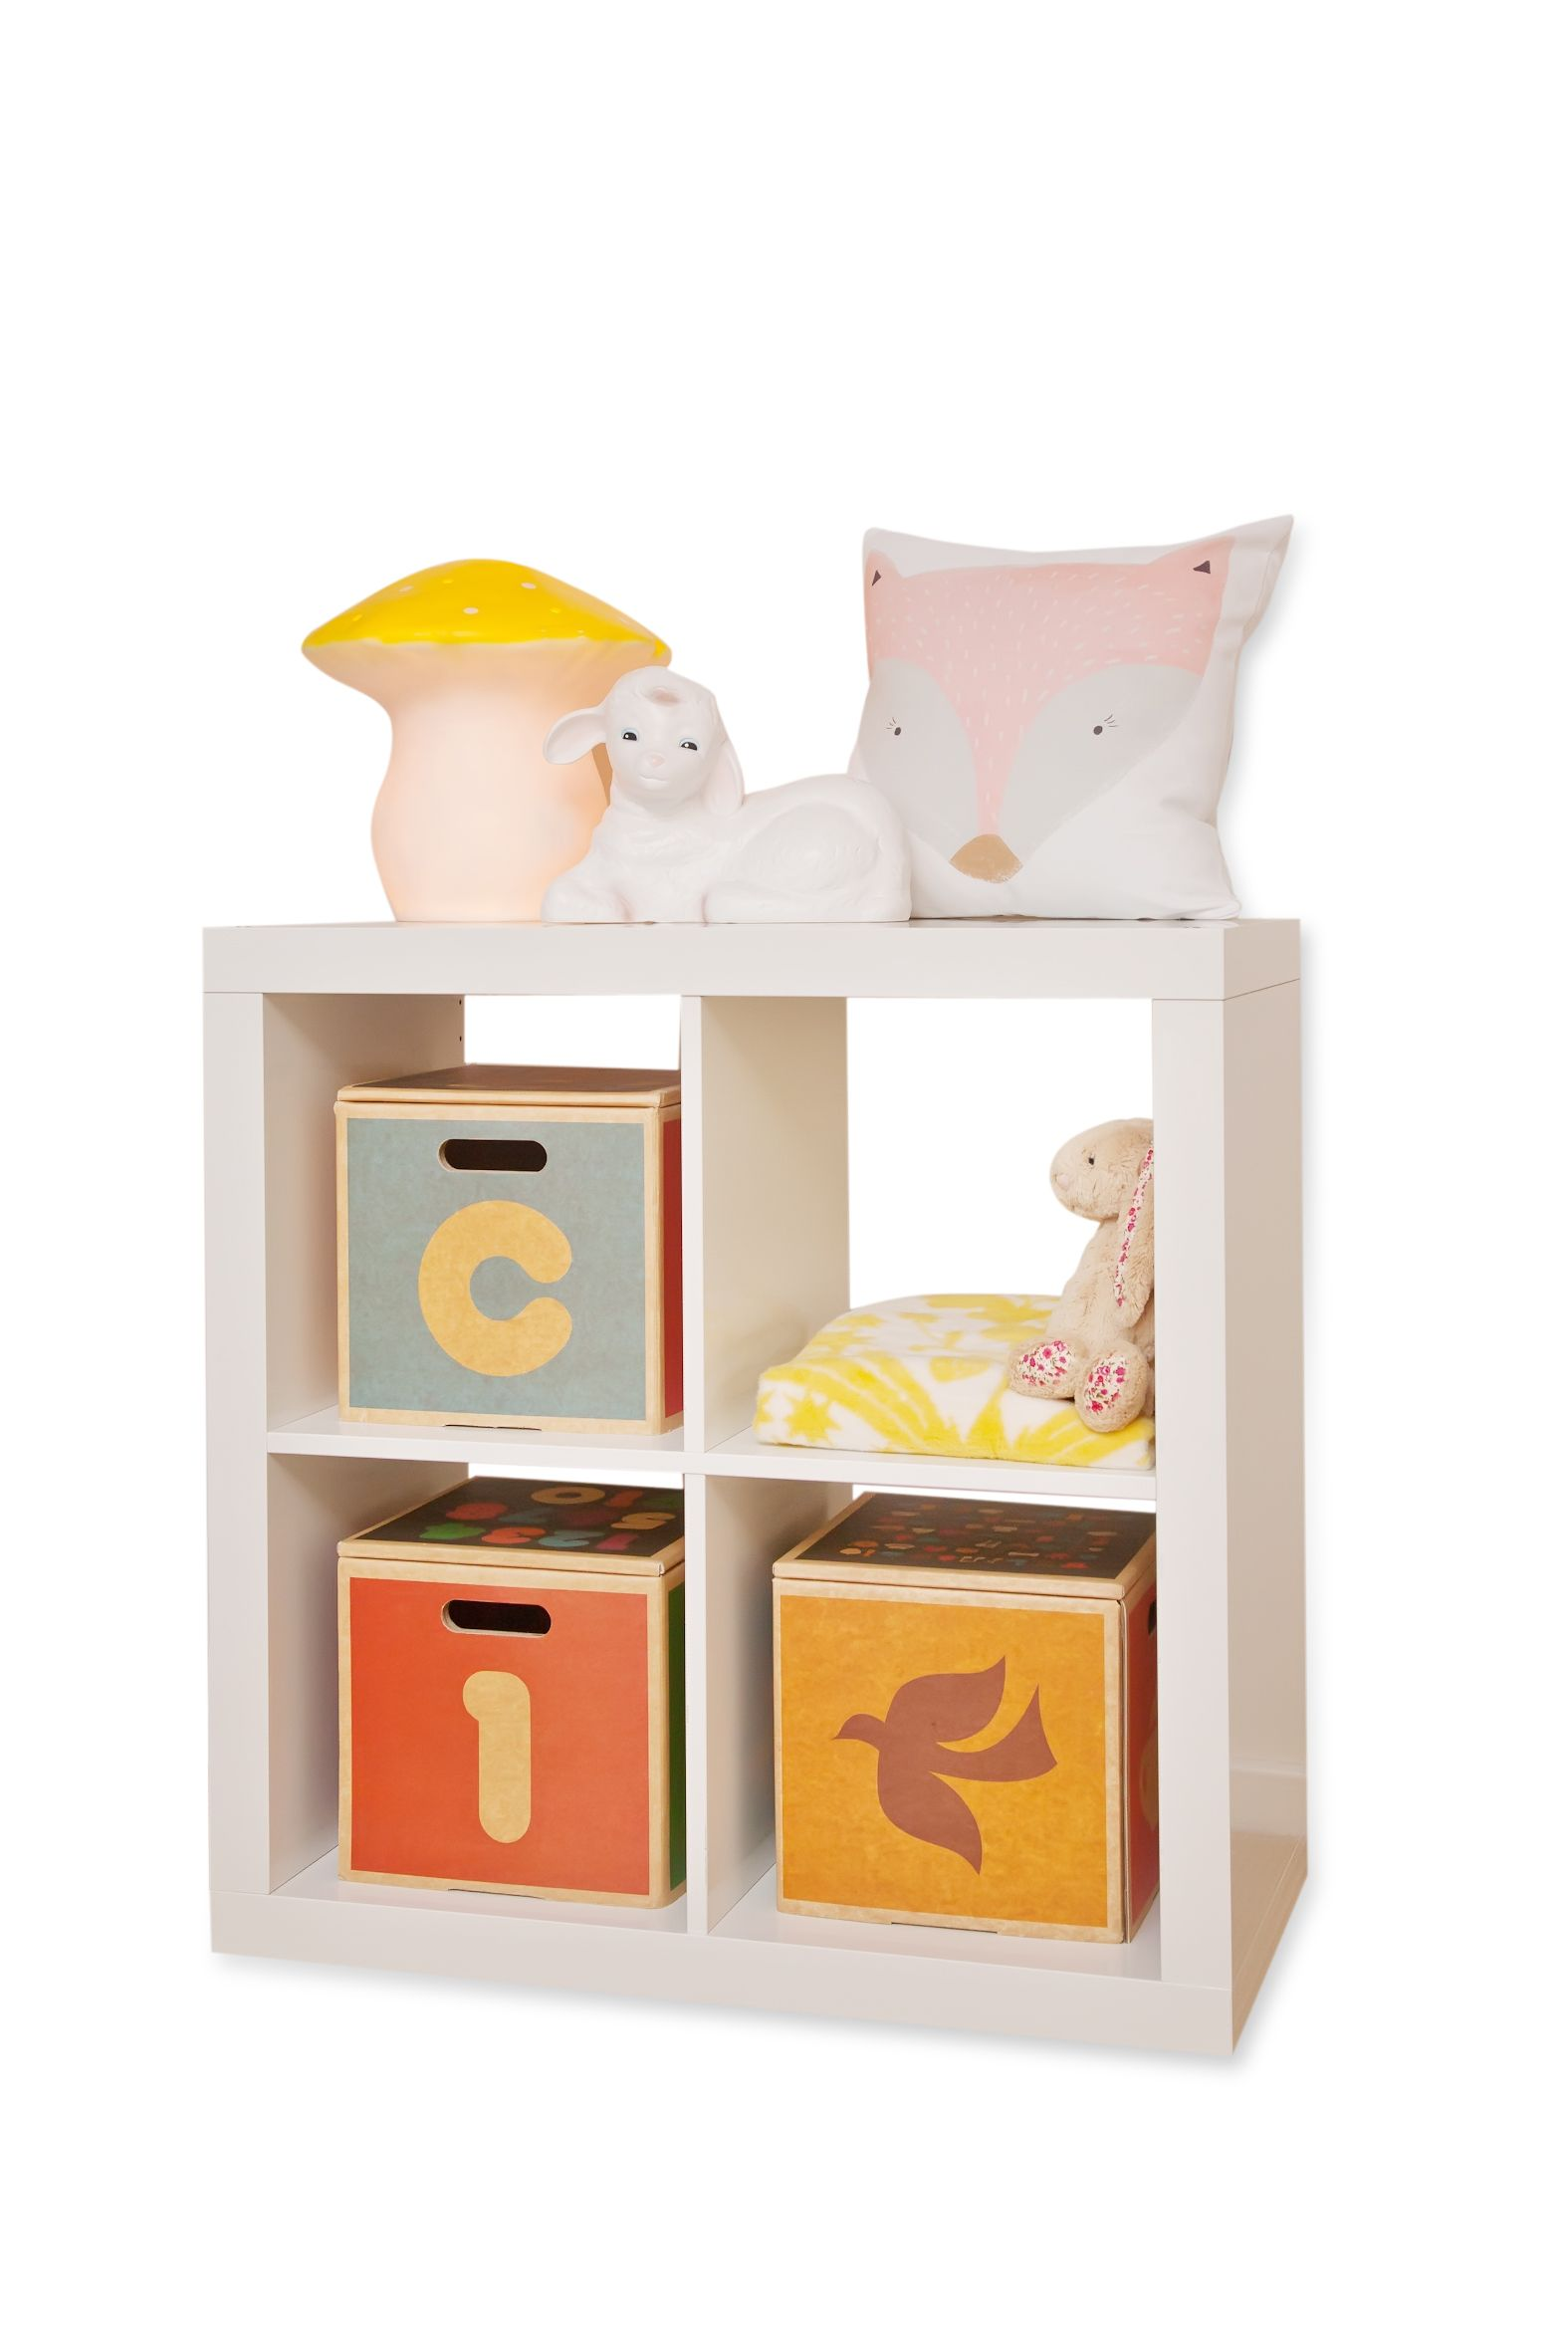 Green Lullaby #cardboard #storage #boxes #cubes in IKEA Expedit bookshelf with Pink Fox cushion from @Habitots and toadstool and lamb #Heico l&s from ...  sc 1 st  Pinterest & Green Lullaby #cardboard #storage #boxes #cubes in IKEA Expedit ...